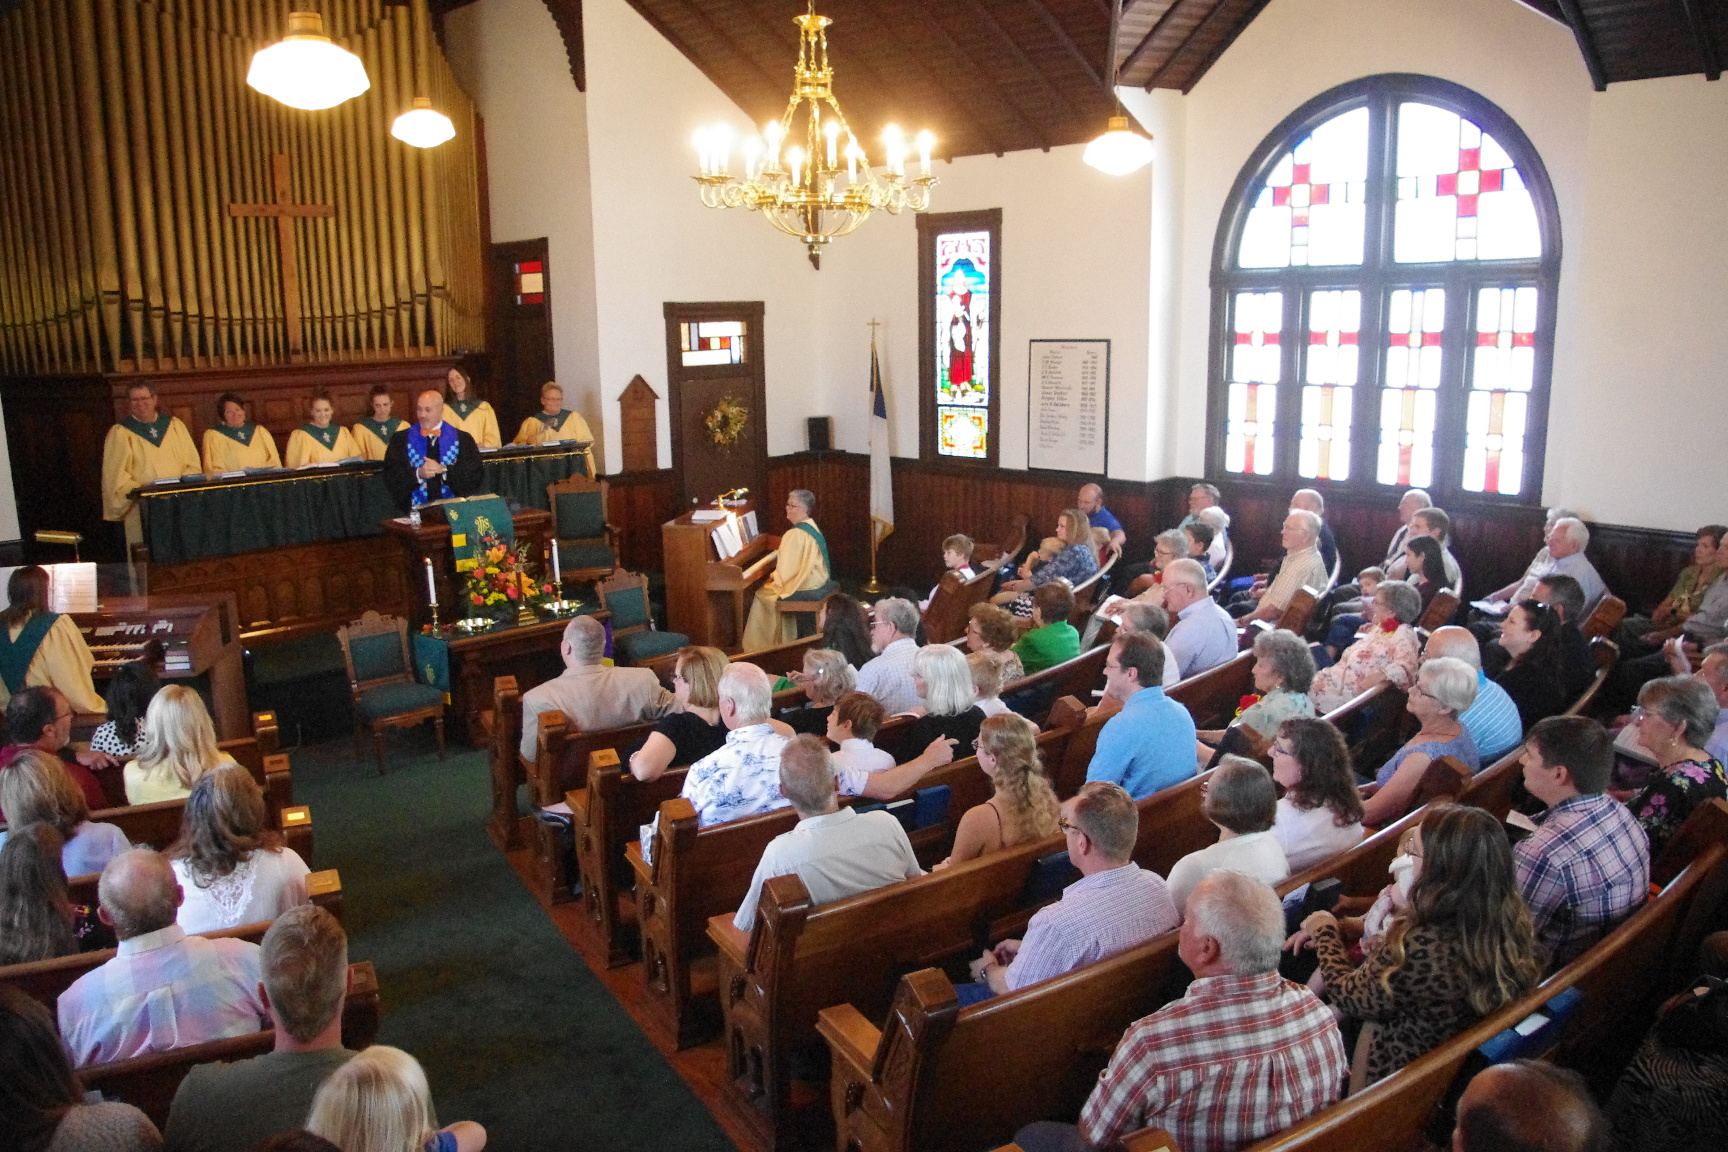 Spring Hill's First Presbyterian Church celebrates 175 years with community feast, service